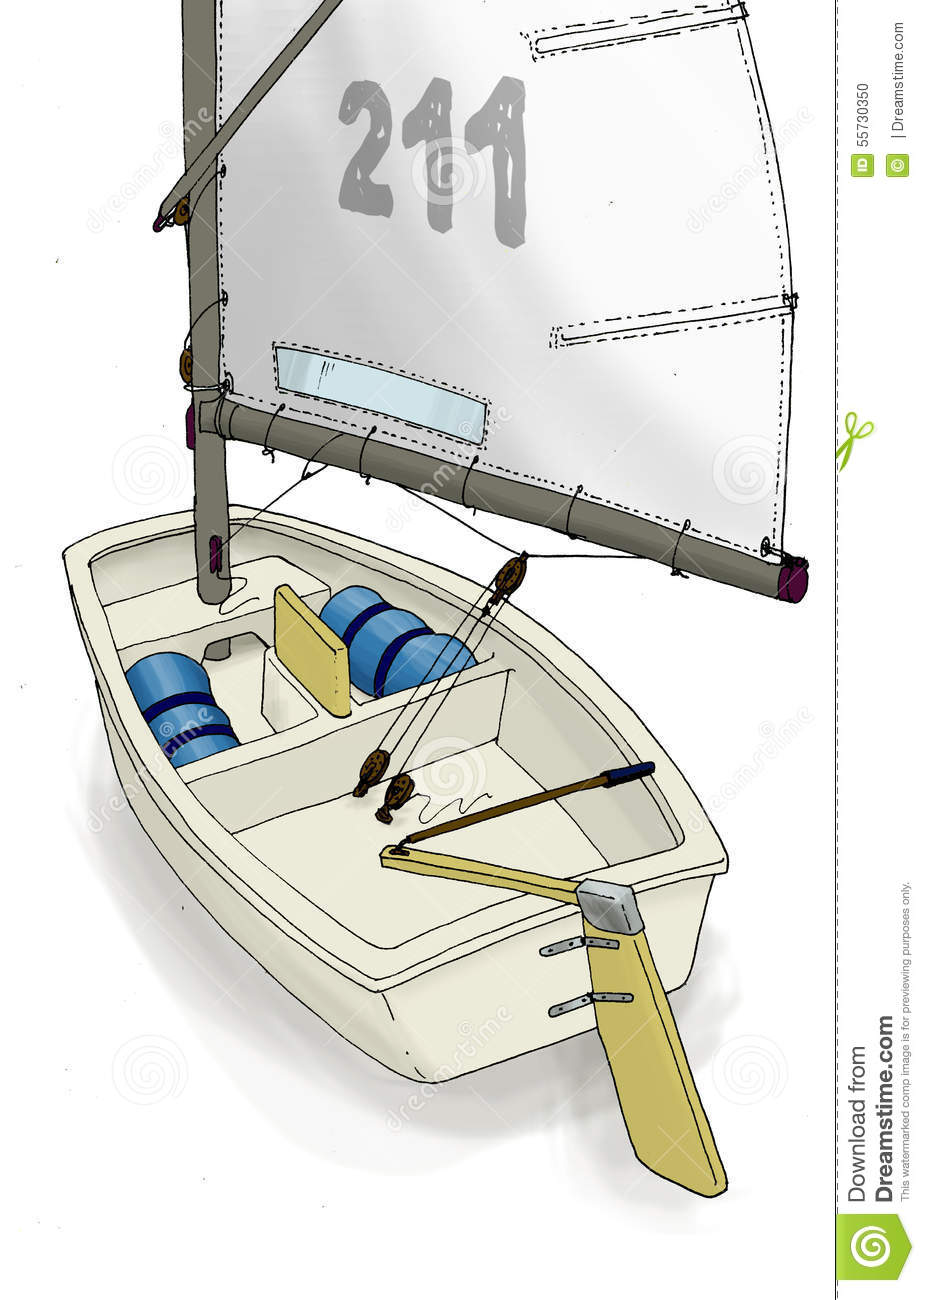 Dingy Sailboat Stock Illustration - Image: 55730350